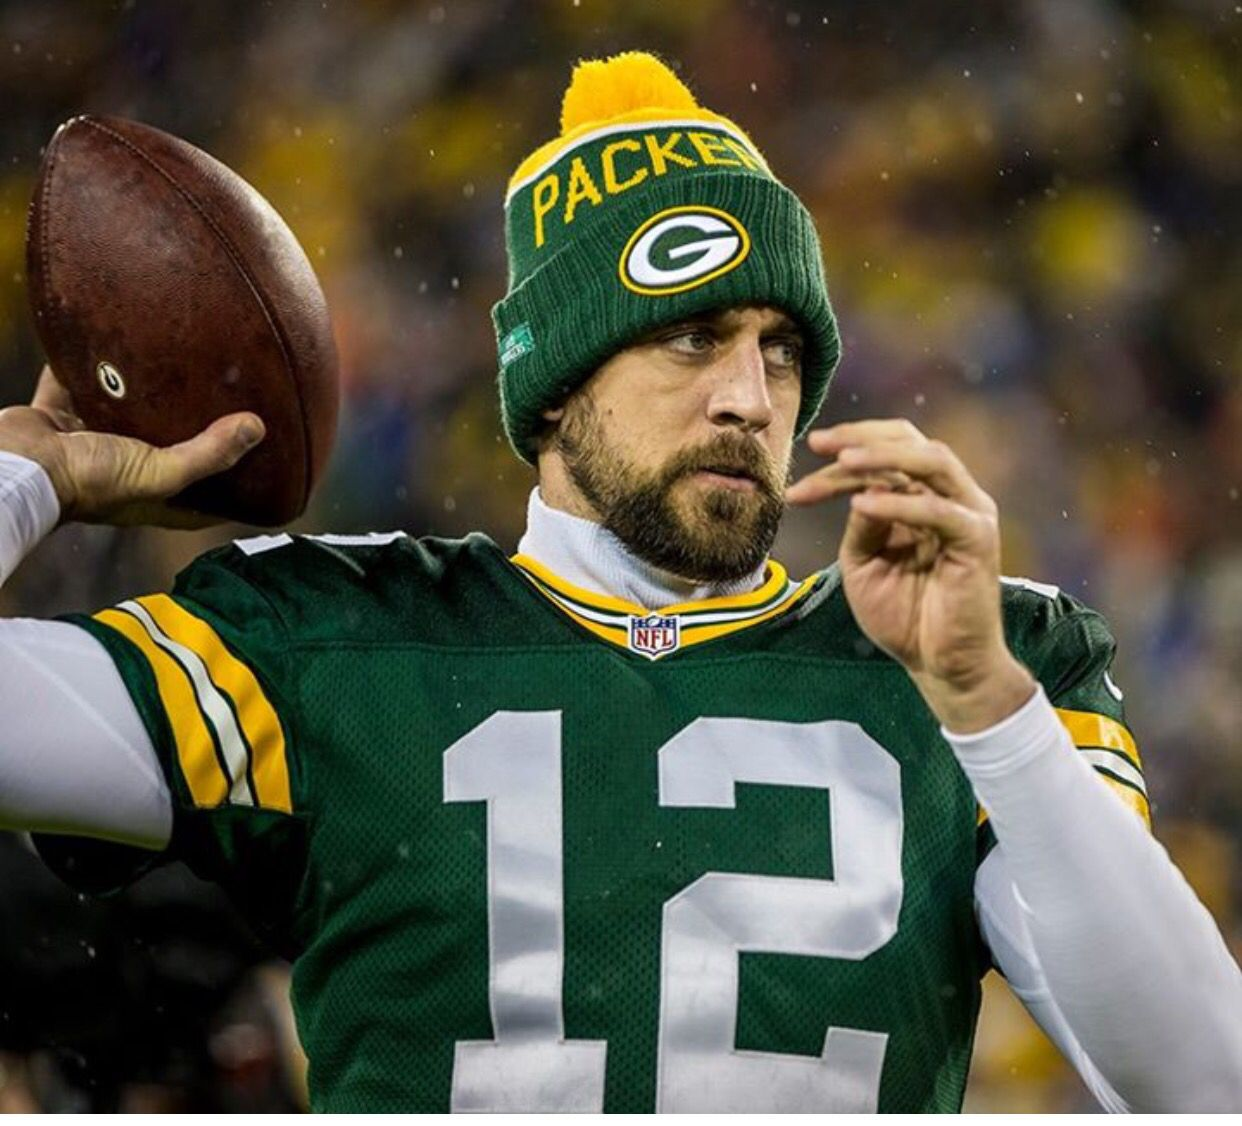 Pin By Sarah Pfarr On Aaron Rodgers My Obsession Aaron Rodgers Green Bay Packers Best Quarterback